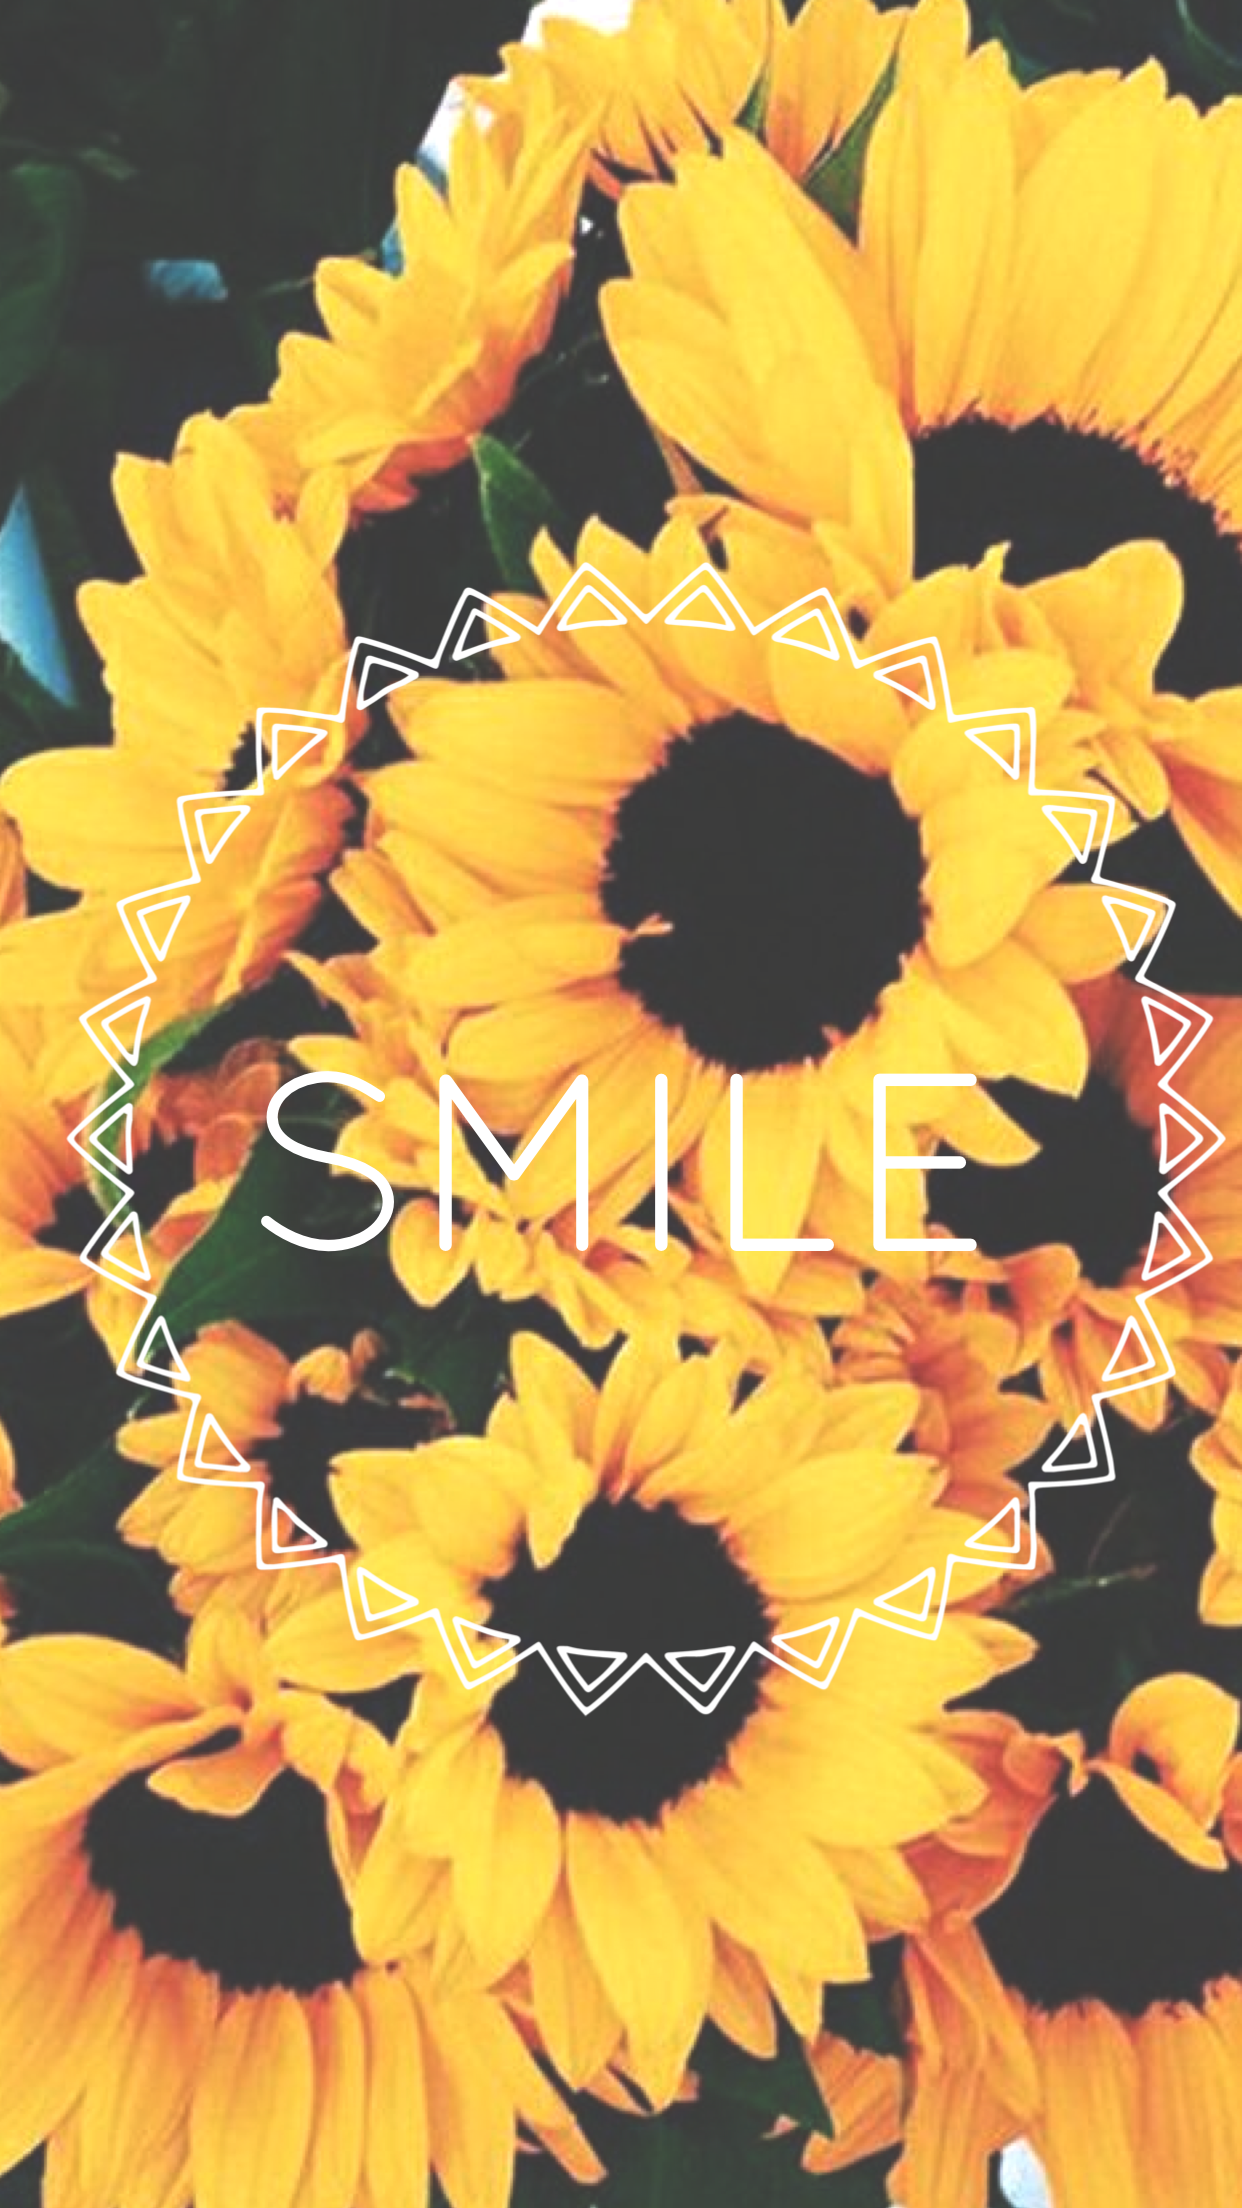 Pin by Keliena Towner on Iphone | Sunflower wallpaper ...